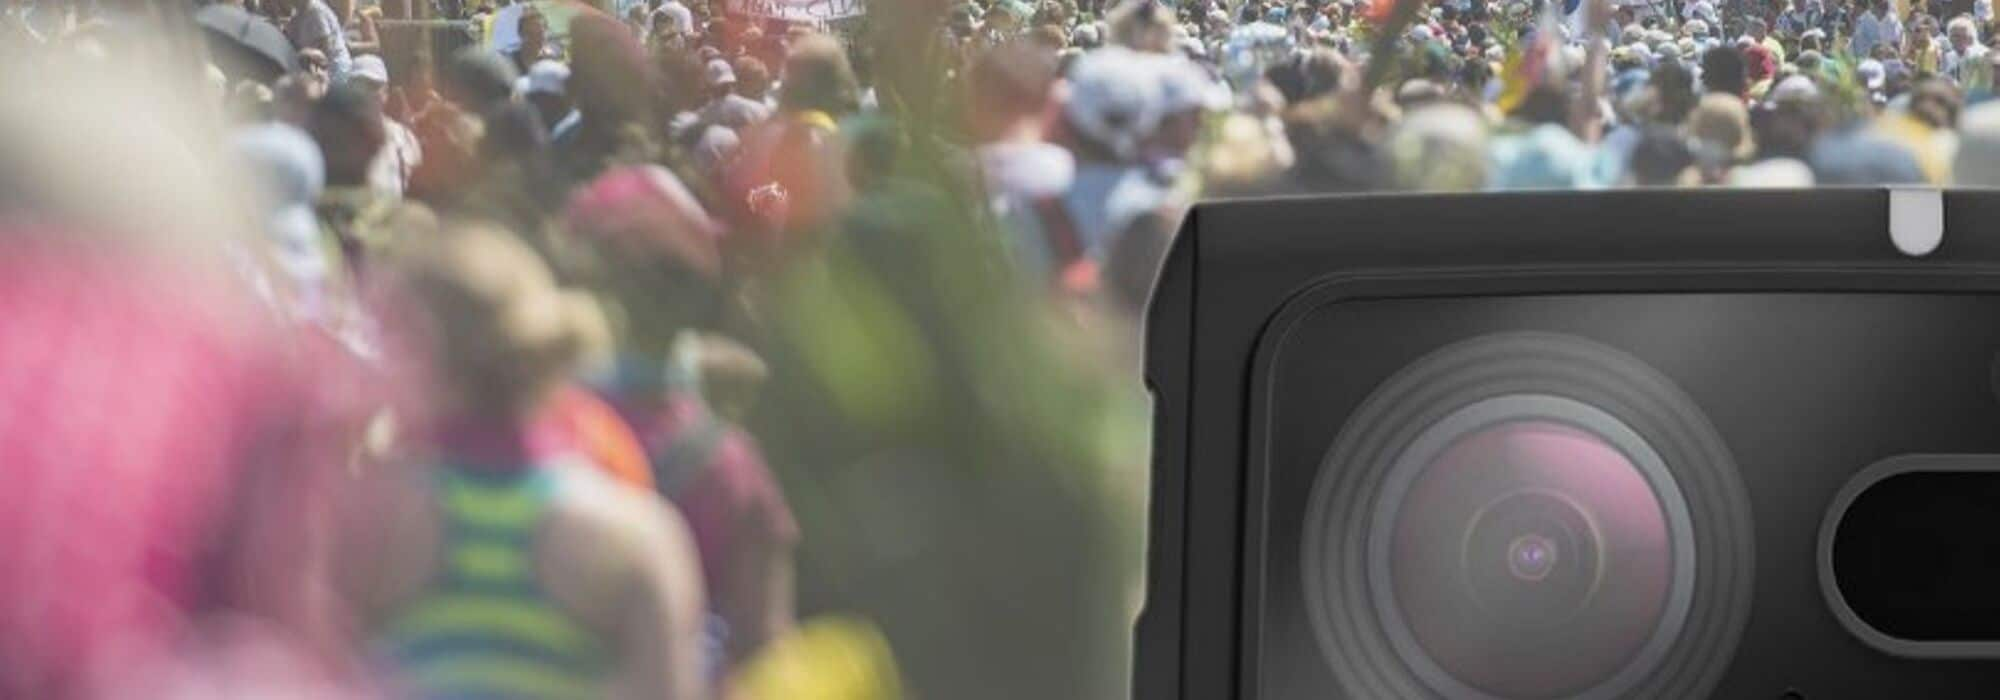 Zepcam bodycam footage makes difference in dutch court